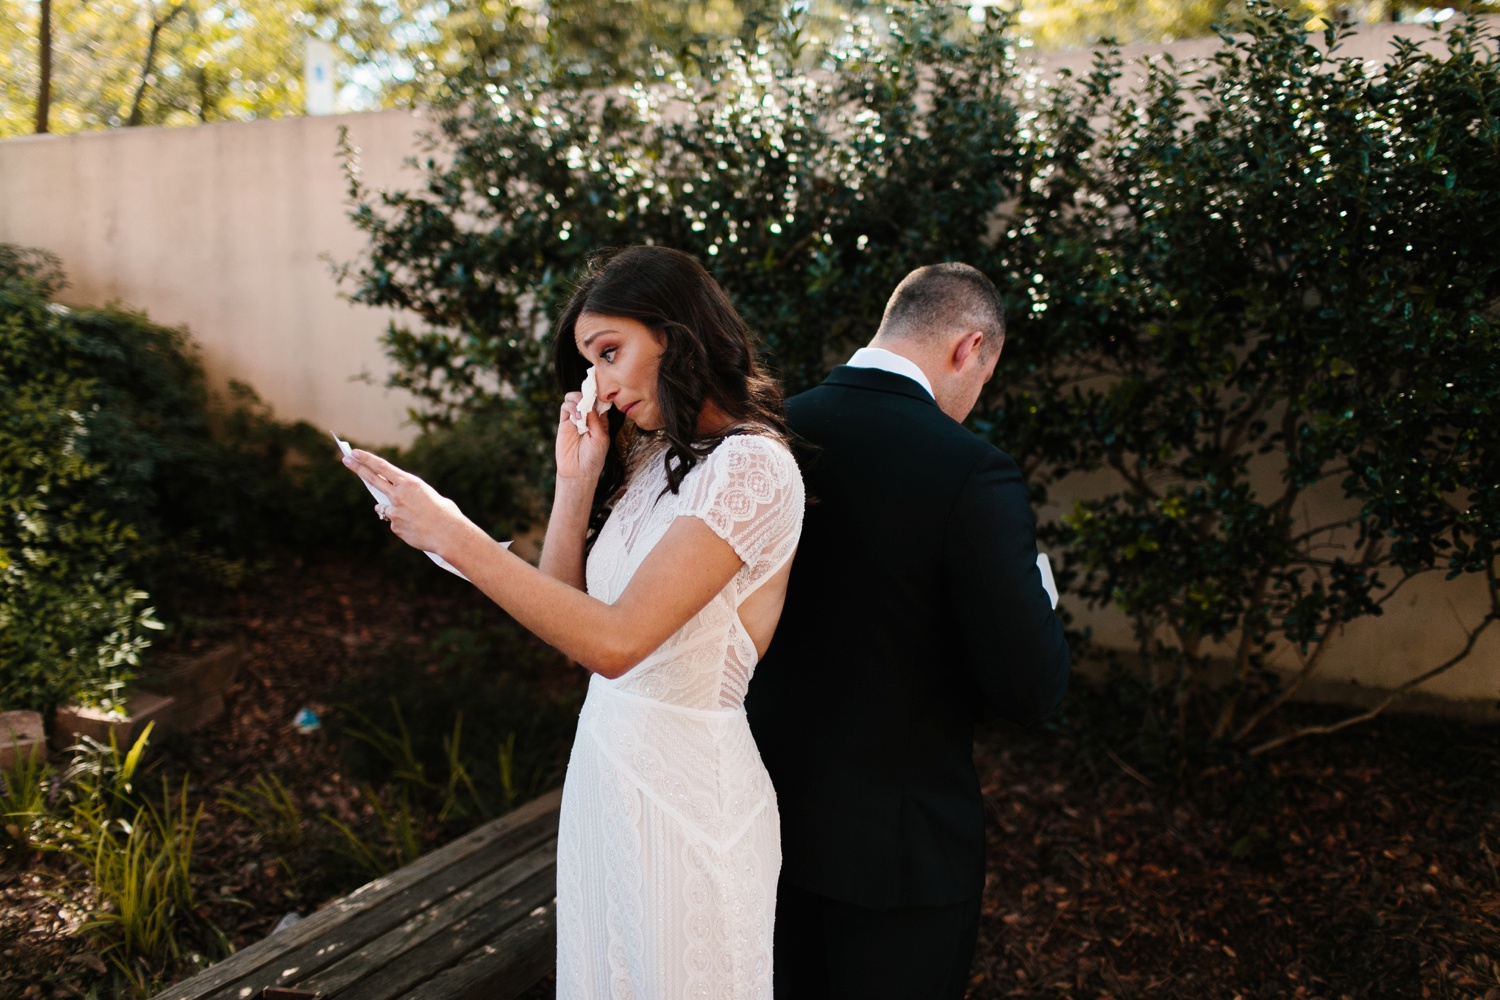 Kadee + Tyler | a raw, emotional wedding at the Filter Building on White Rock Lake in Dallas, TX by North Texas Wedding Photographer, Rachel Meagan Photography 045